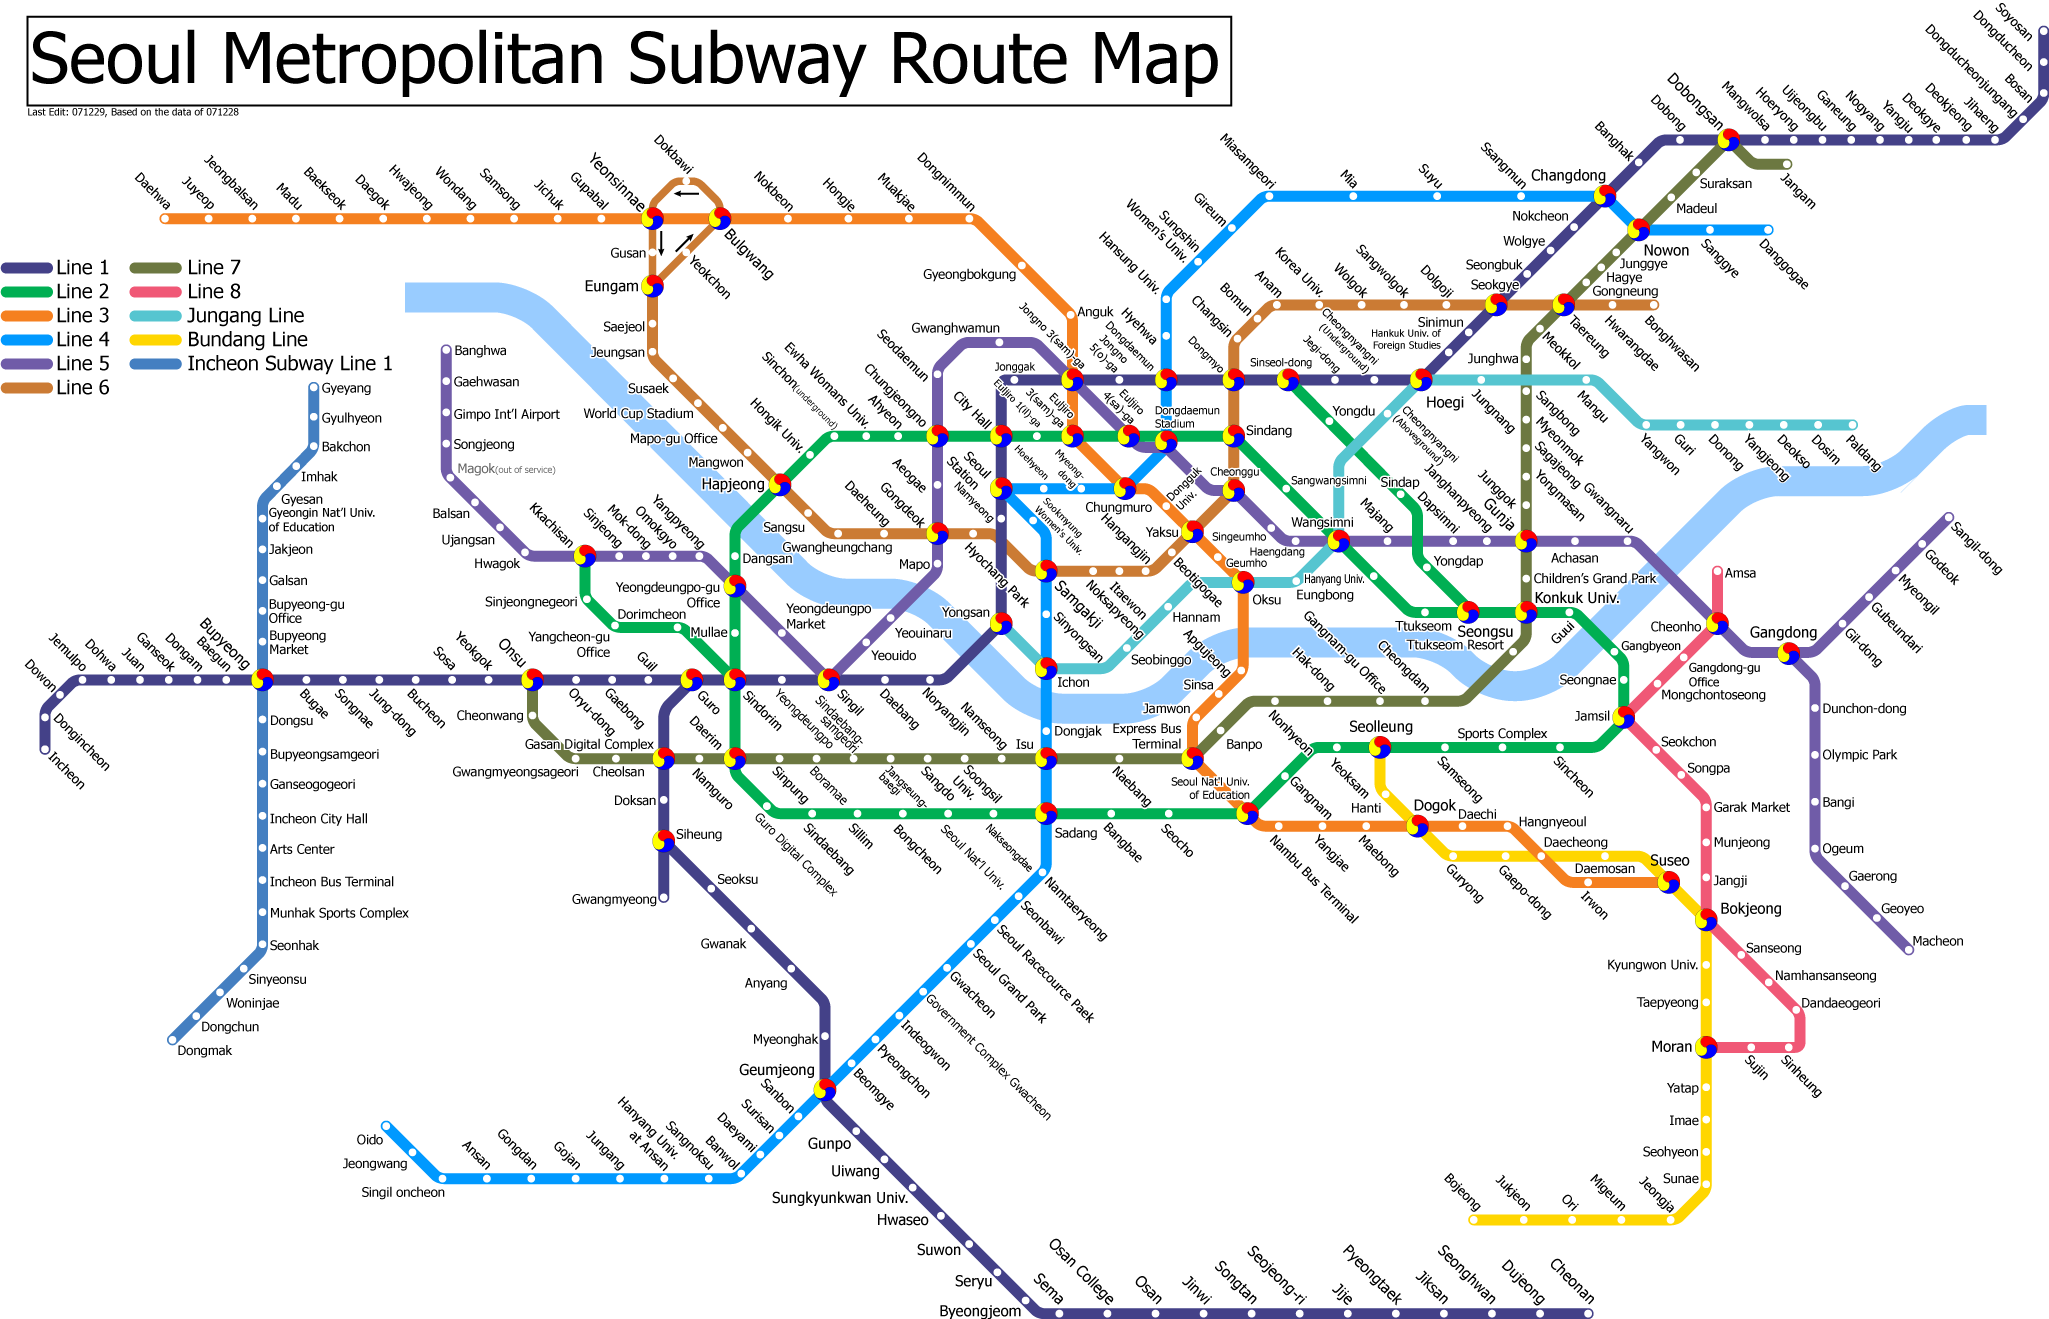 Seoul Metropolitan Subway Route and Location Map,Location and Route Map of Seoul Metropolitan Subway,Seoul Metropolitan Subway accommodation destinations attractions hotels map reviews photos pictures,seoul metro map pdf 2014 interactive,printable seoul subway map pdf 2013 interactive download in korean